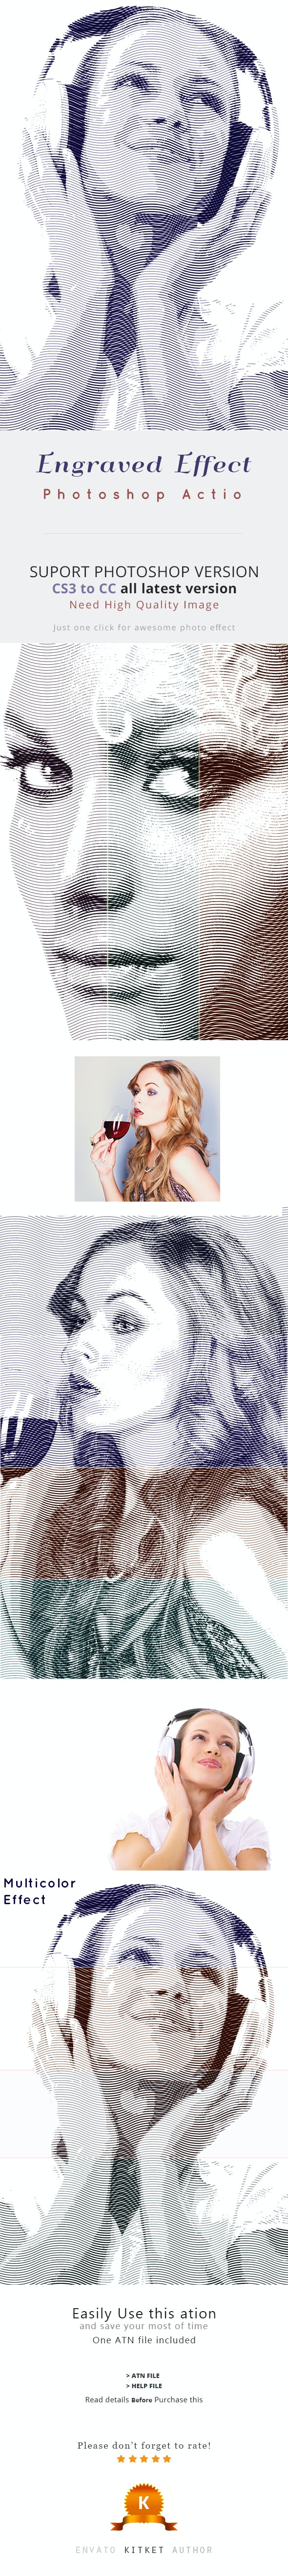 Engraved Effect Photoshop Action - Photo Effects Actions